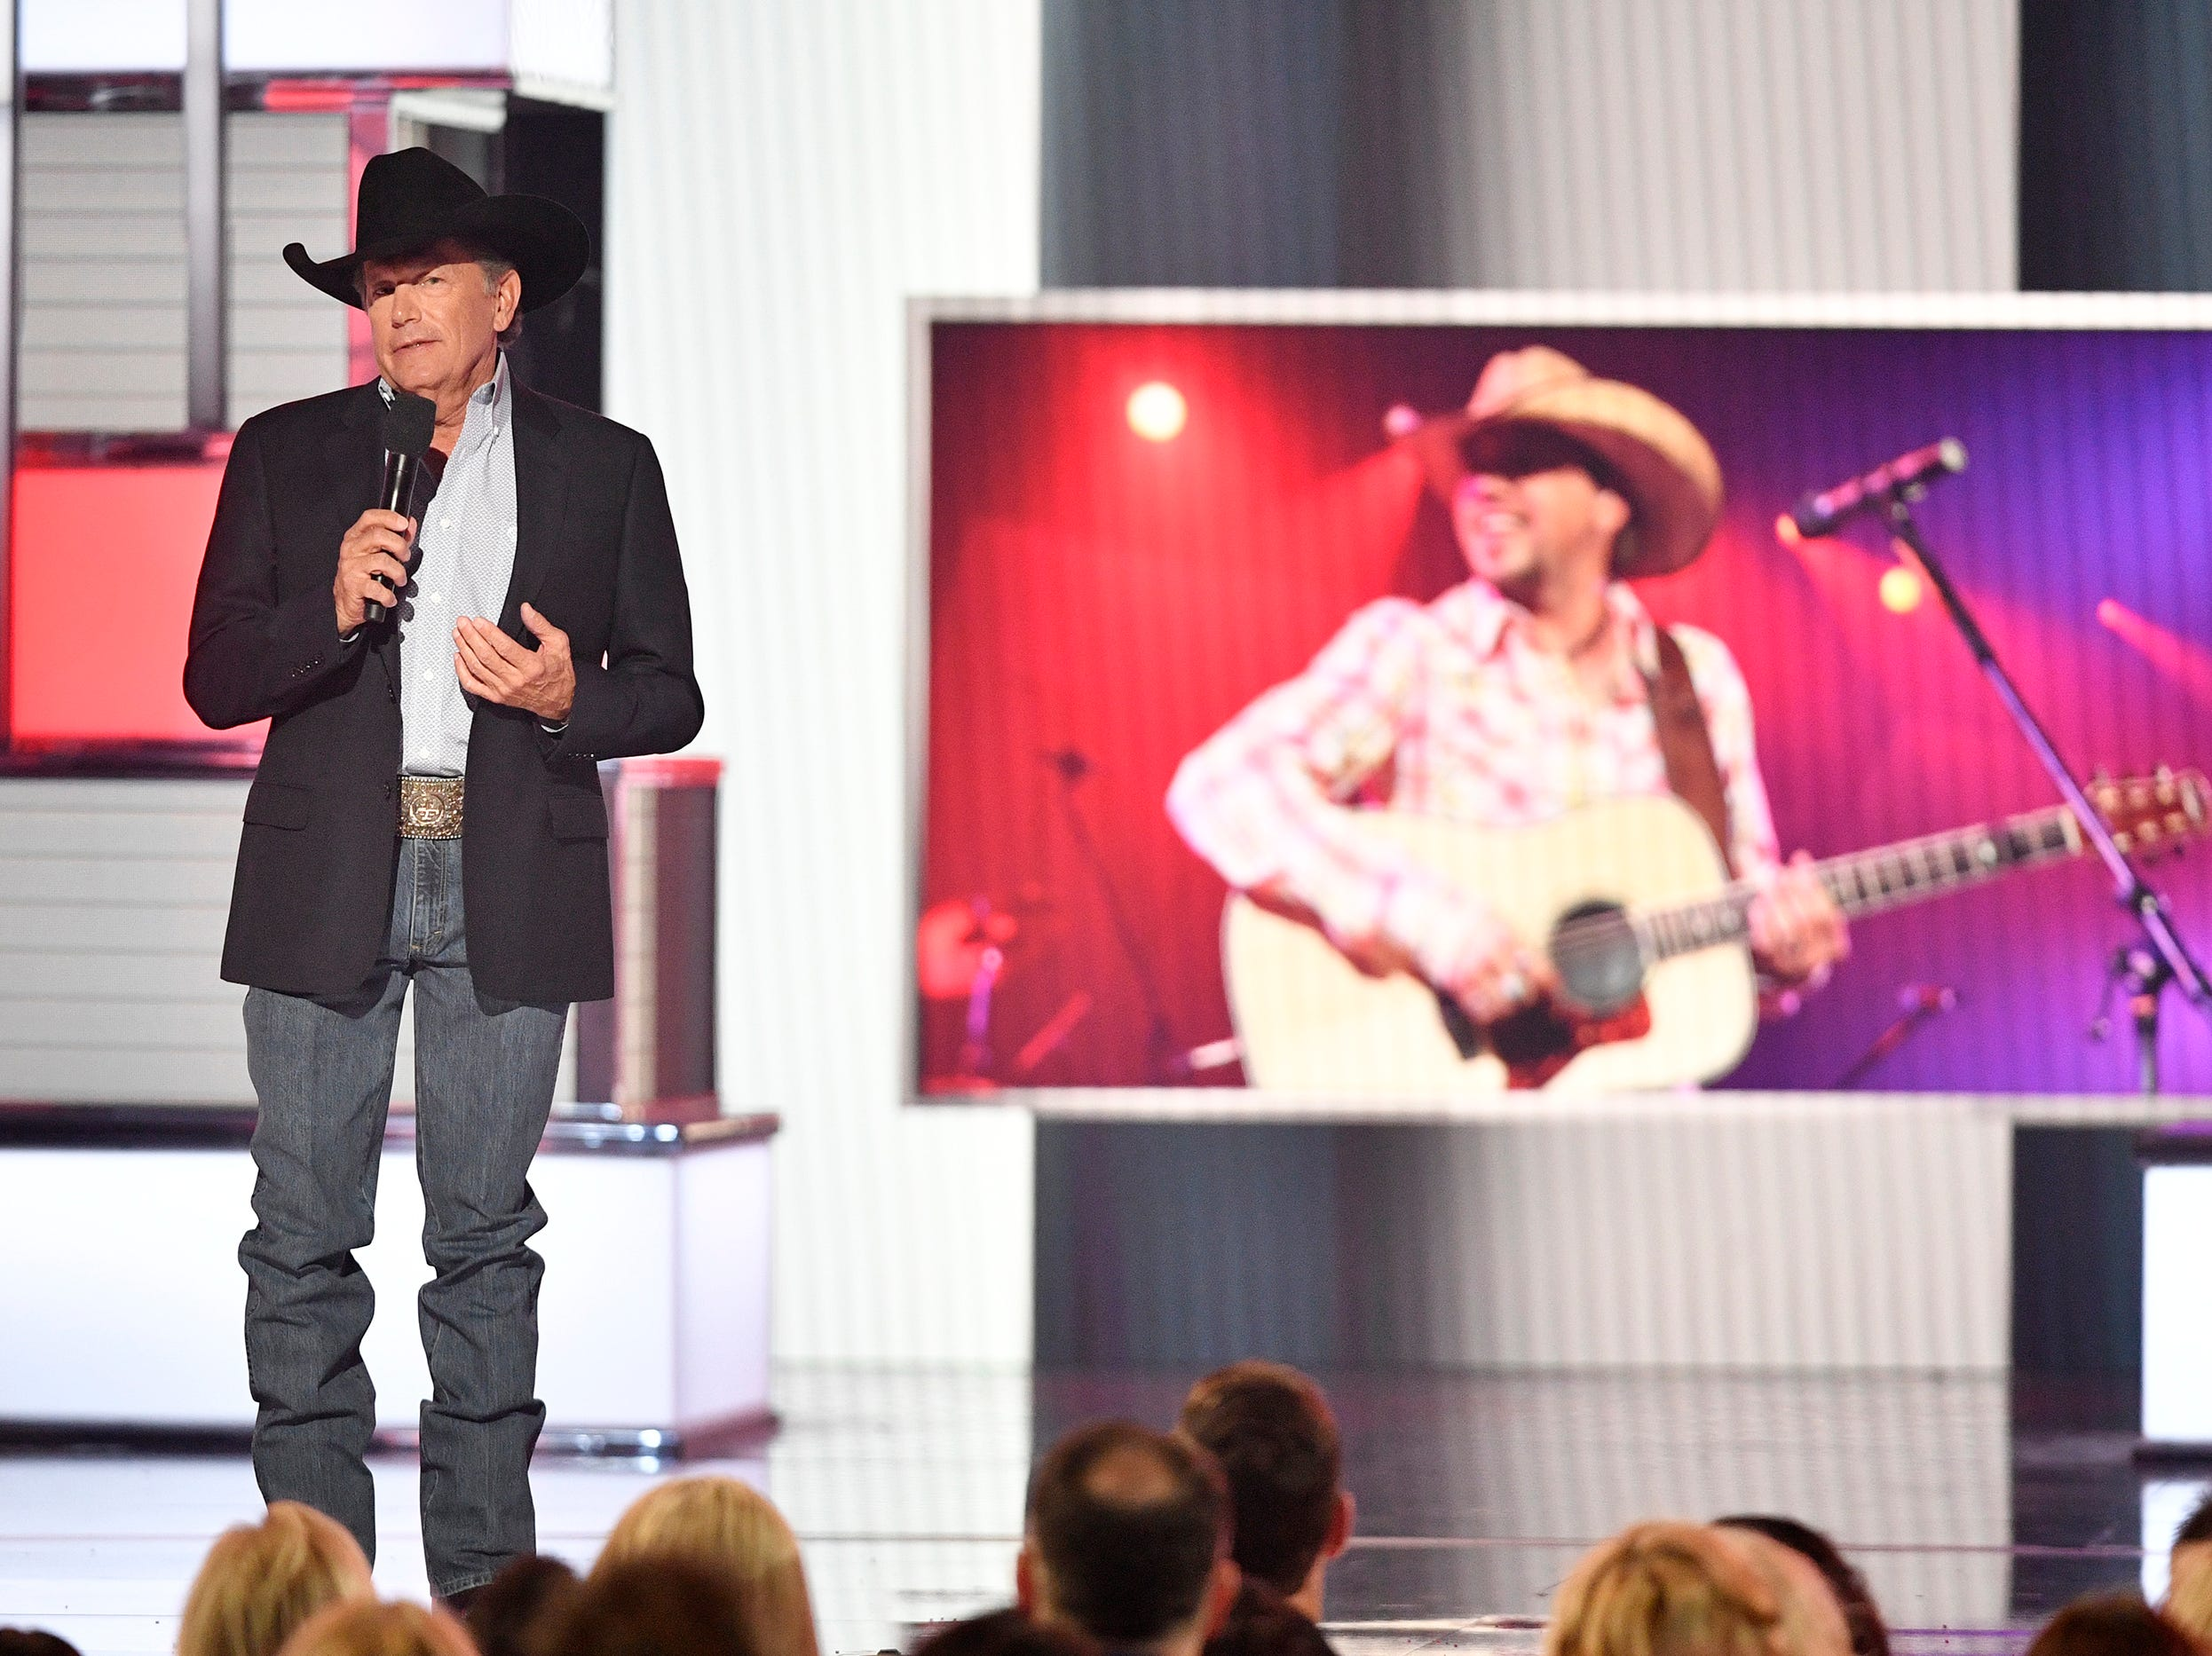 George Strait presents the ACM Dick Clark Artist of the Decade Award for Jason Aldean during the 54TH Academy of Country Music Awards Sunday, April 7, 2019, in Las Vegas, Nev.